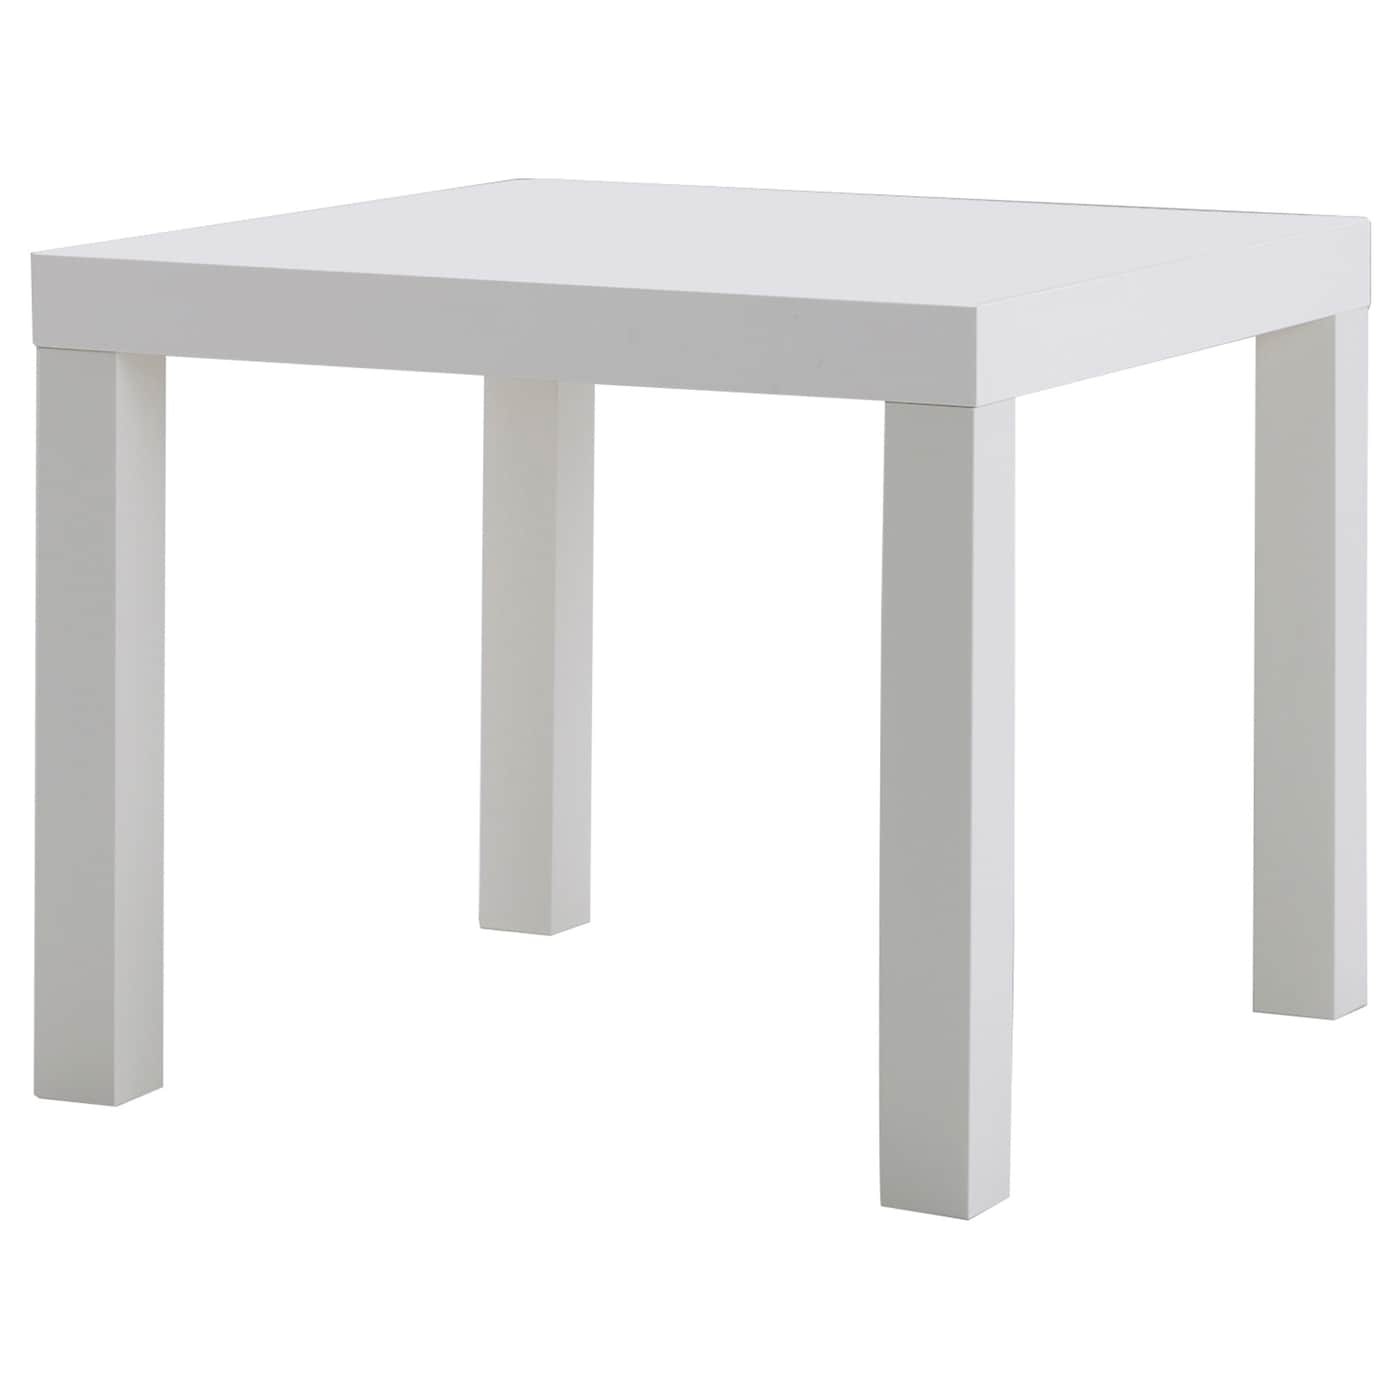 Lack side table white 55x55 cm ikea - Table basse ikea avec tiroir ...